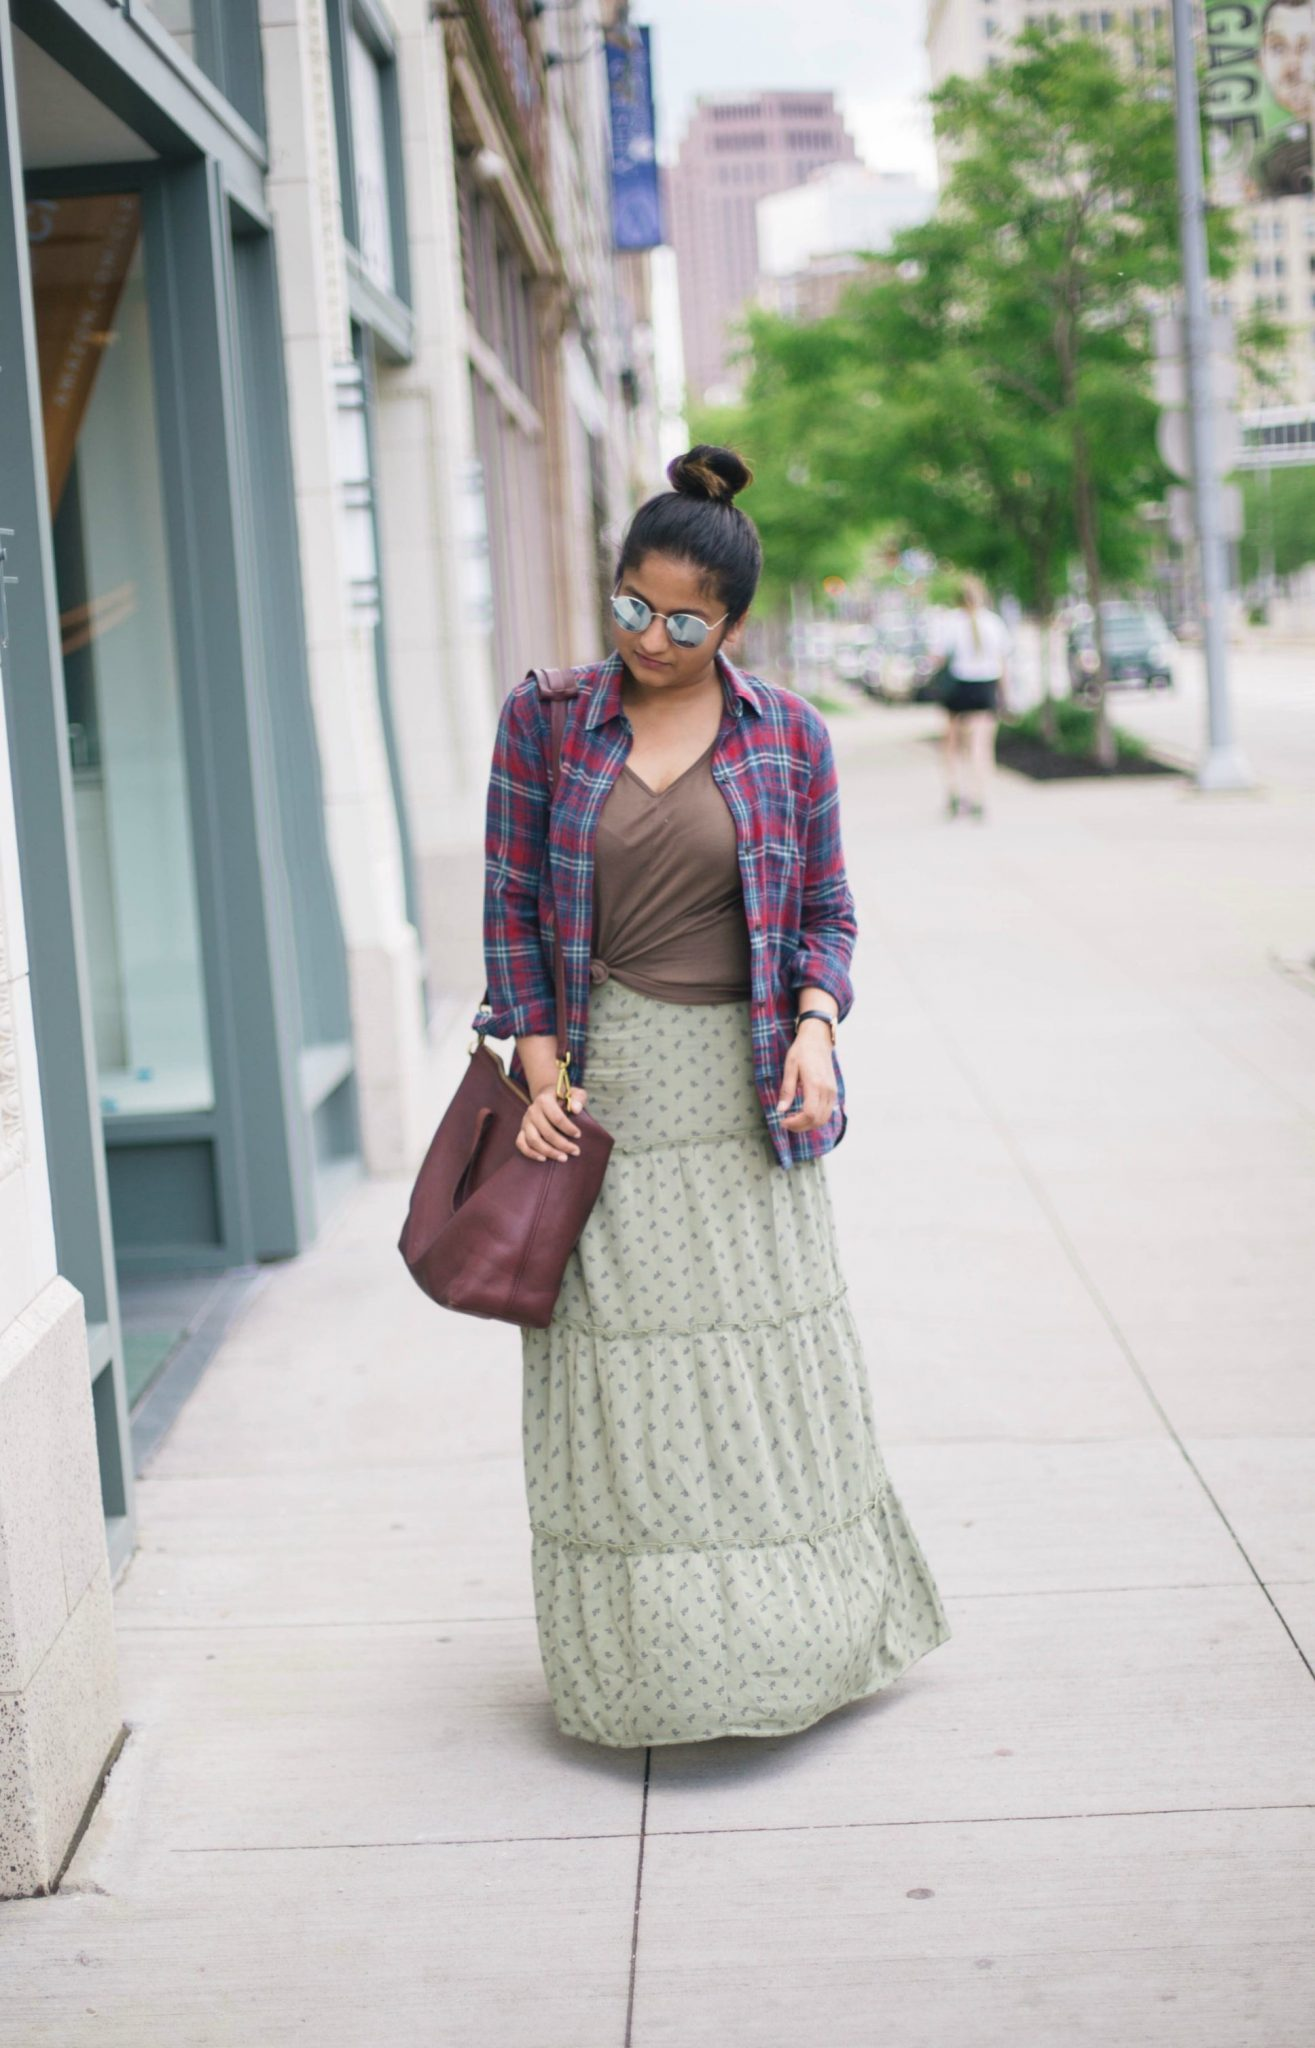 Forever 21 has the Skirt for you! Mini, midi, and maxi silhouettes in an array of designs for all occasions: dressy to casual. Find your favorite skirt: a button front denim mini, ruffled high .